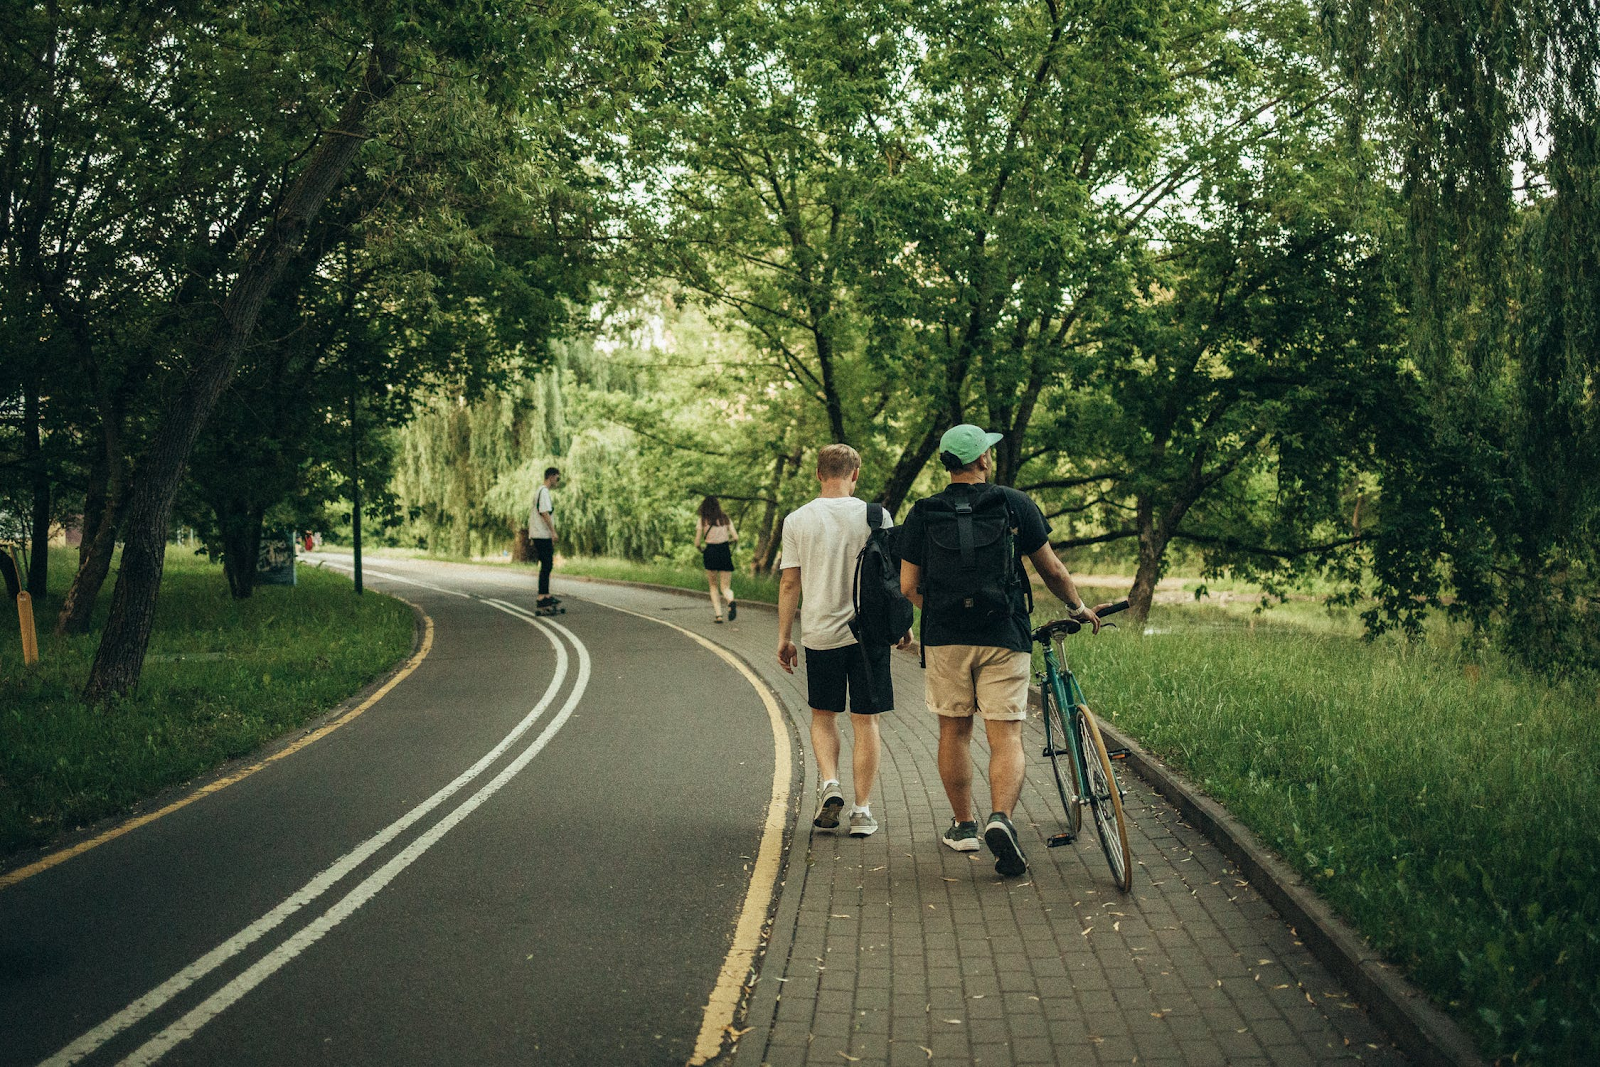 People walk and bike as a form of transportation for their travels.